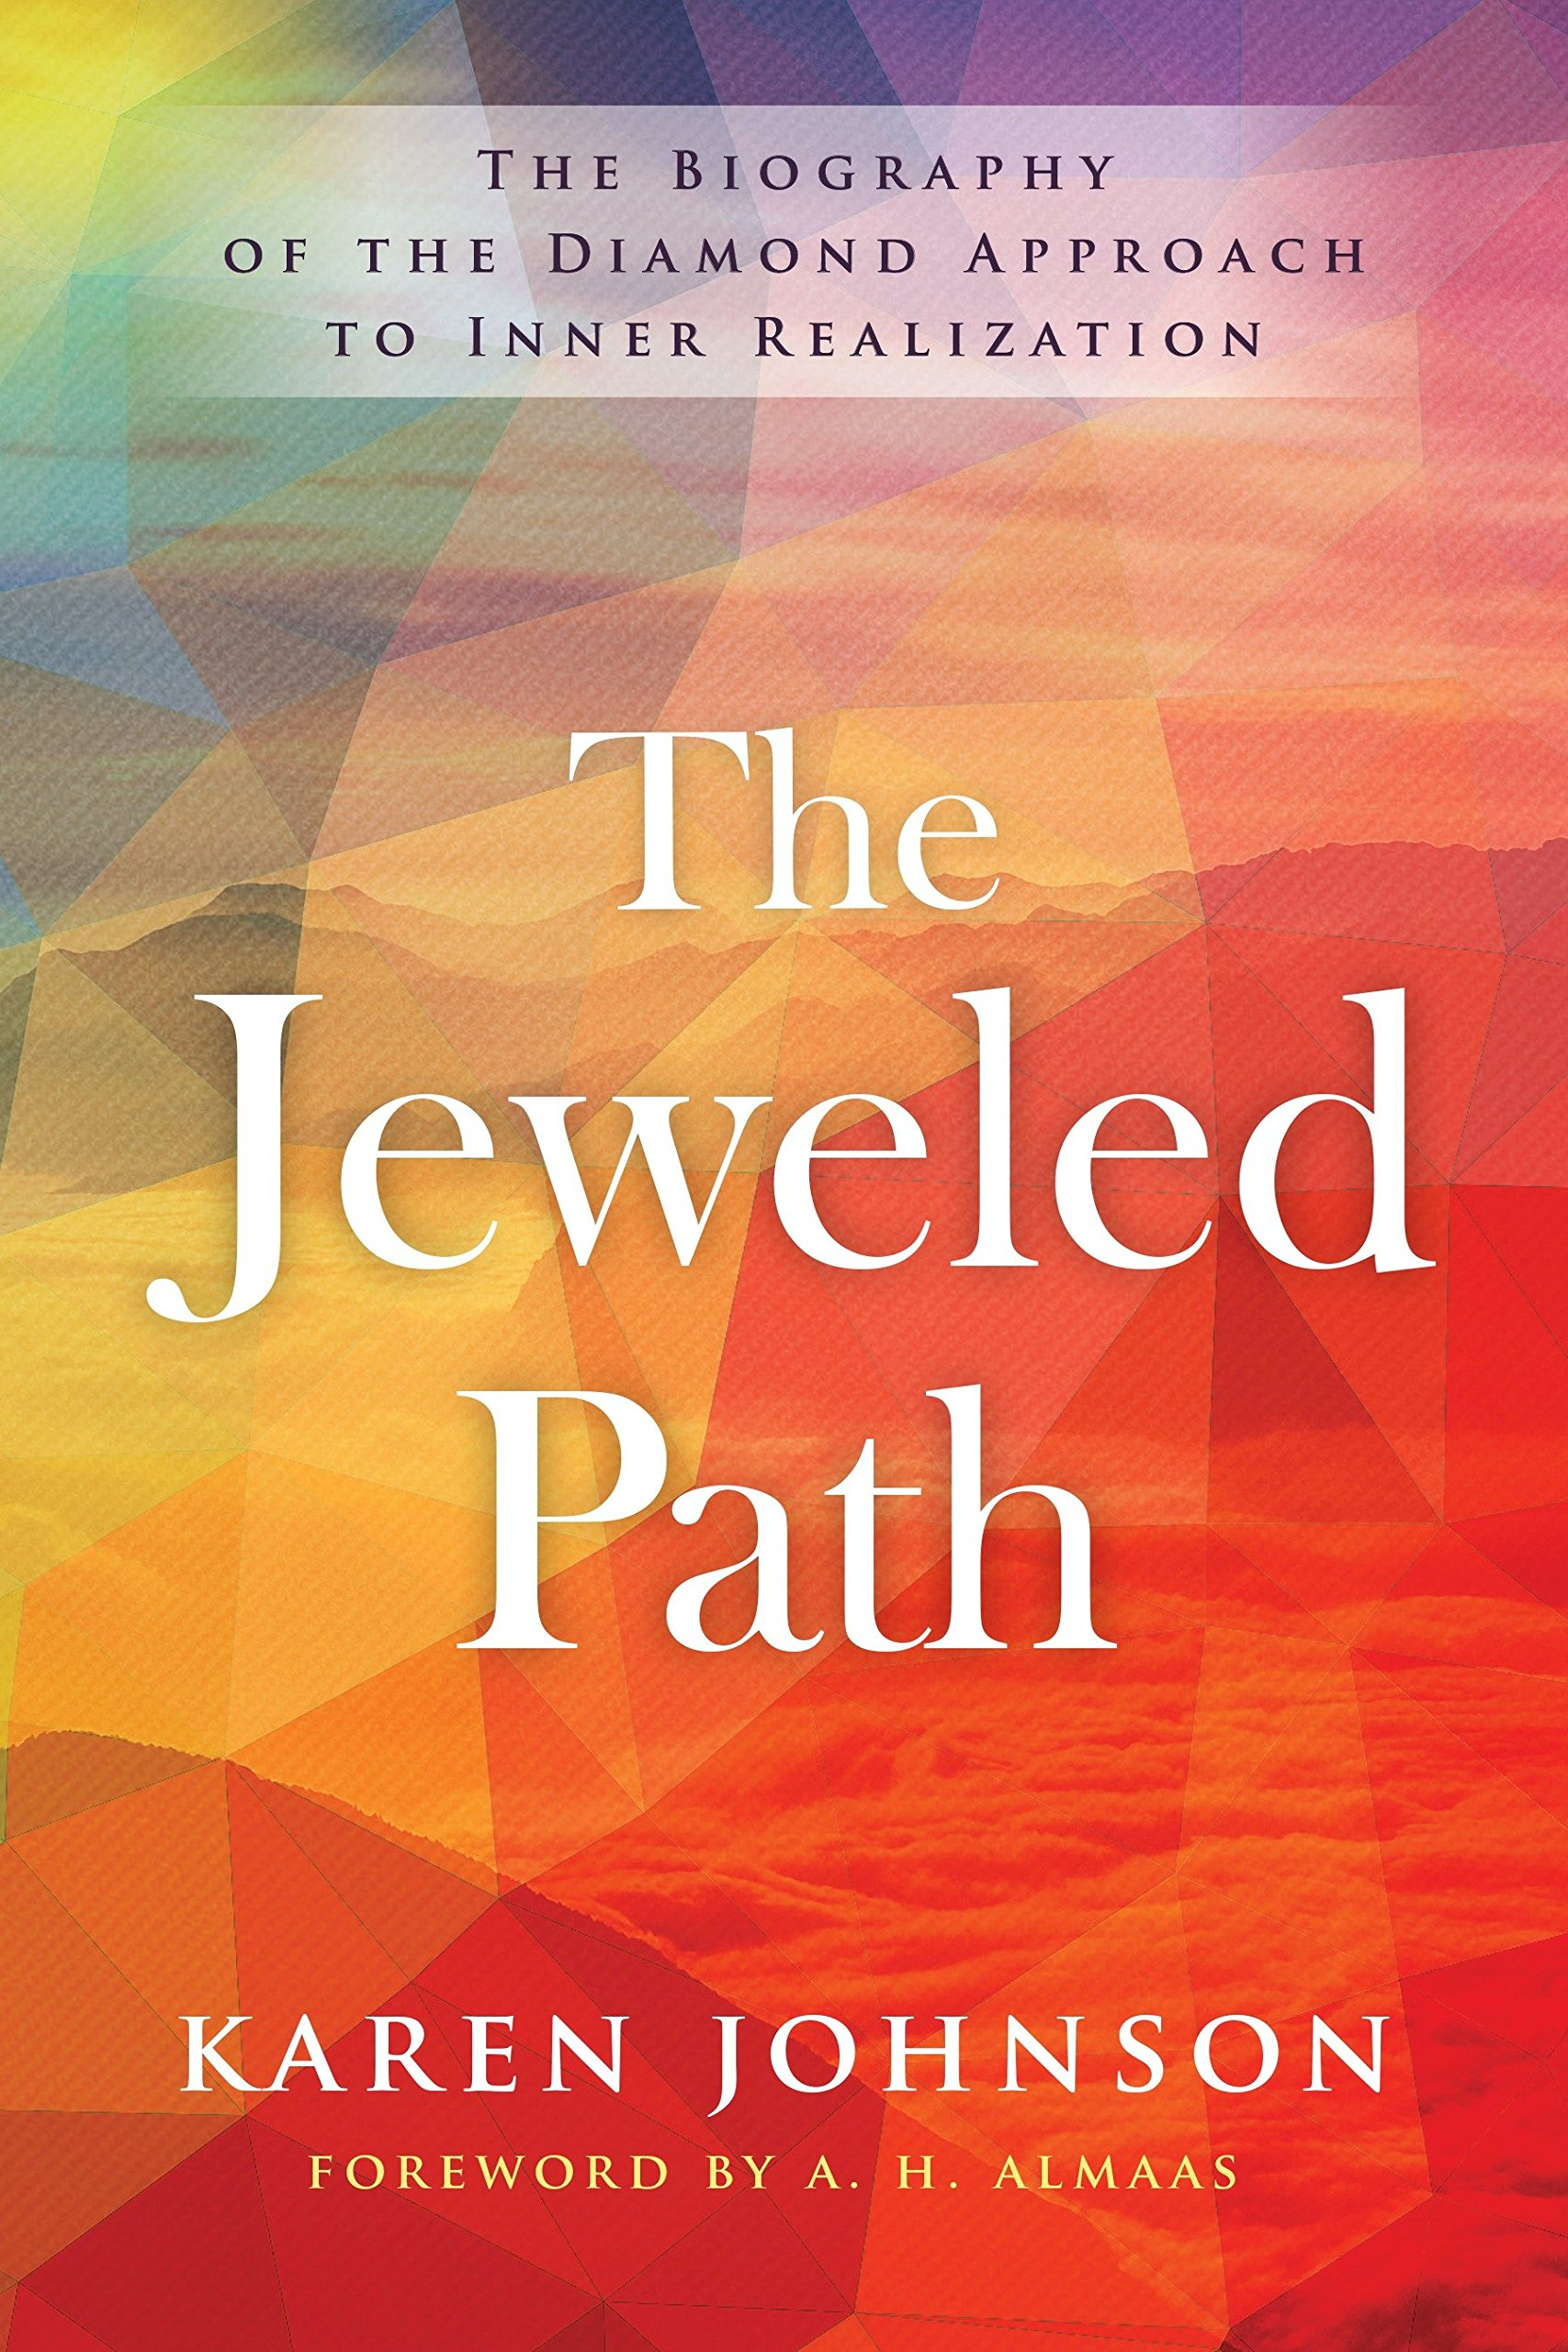 Image result for The Jeweled Path: The Biography of the Diamond Approach to Inner Realization